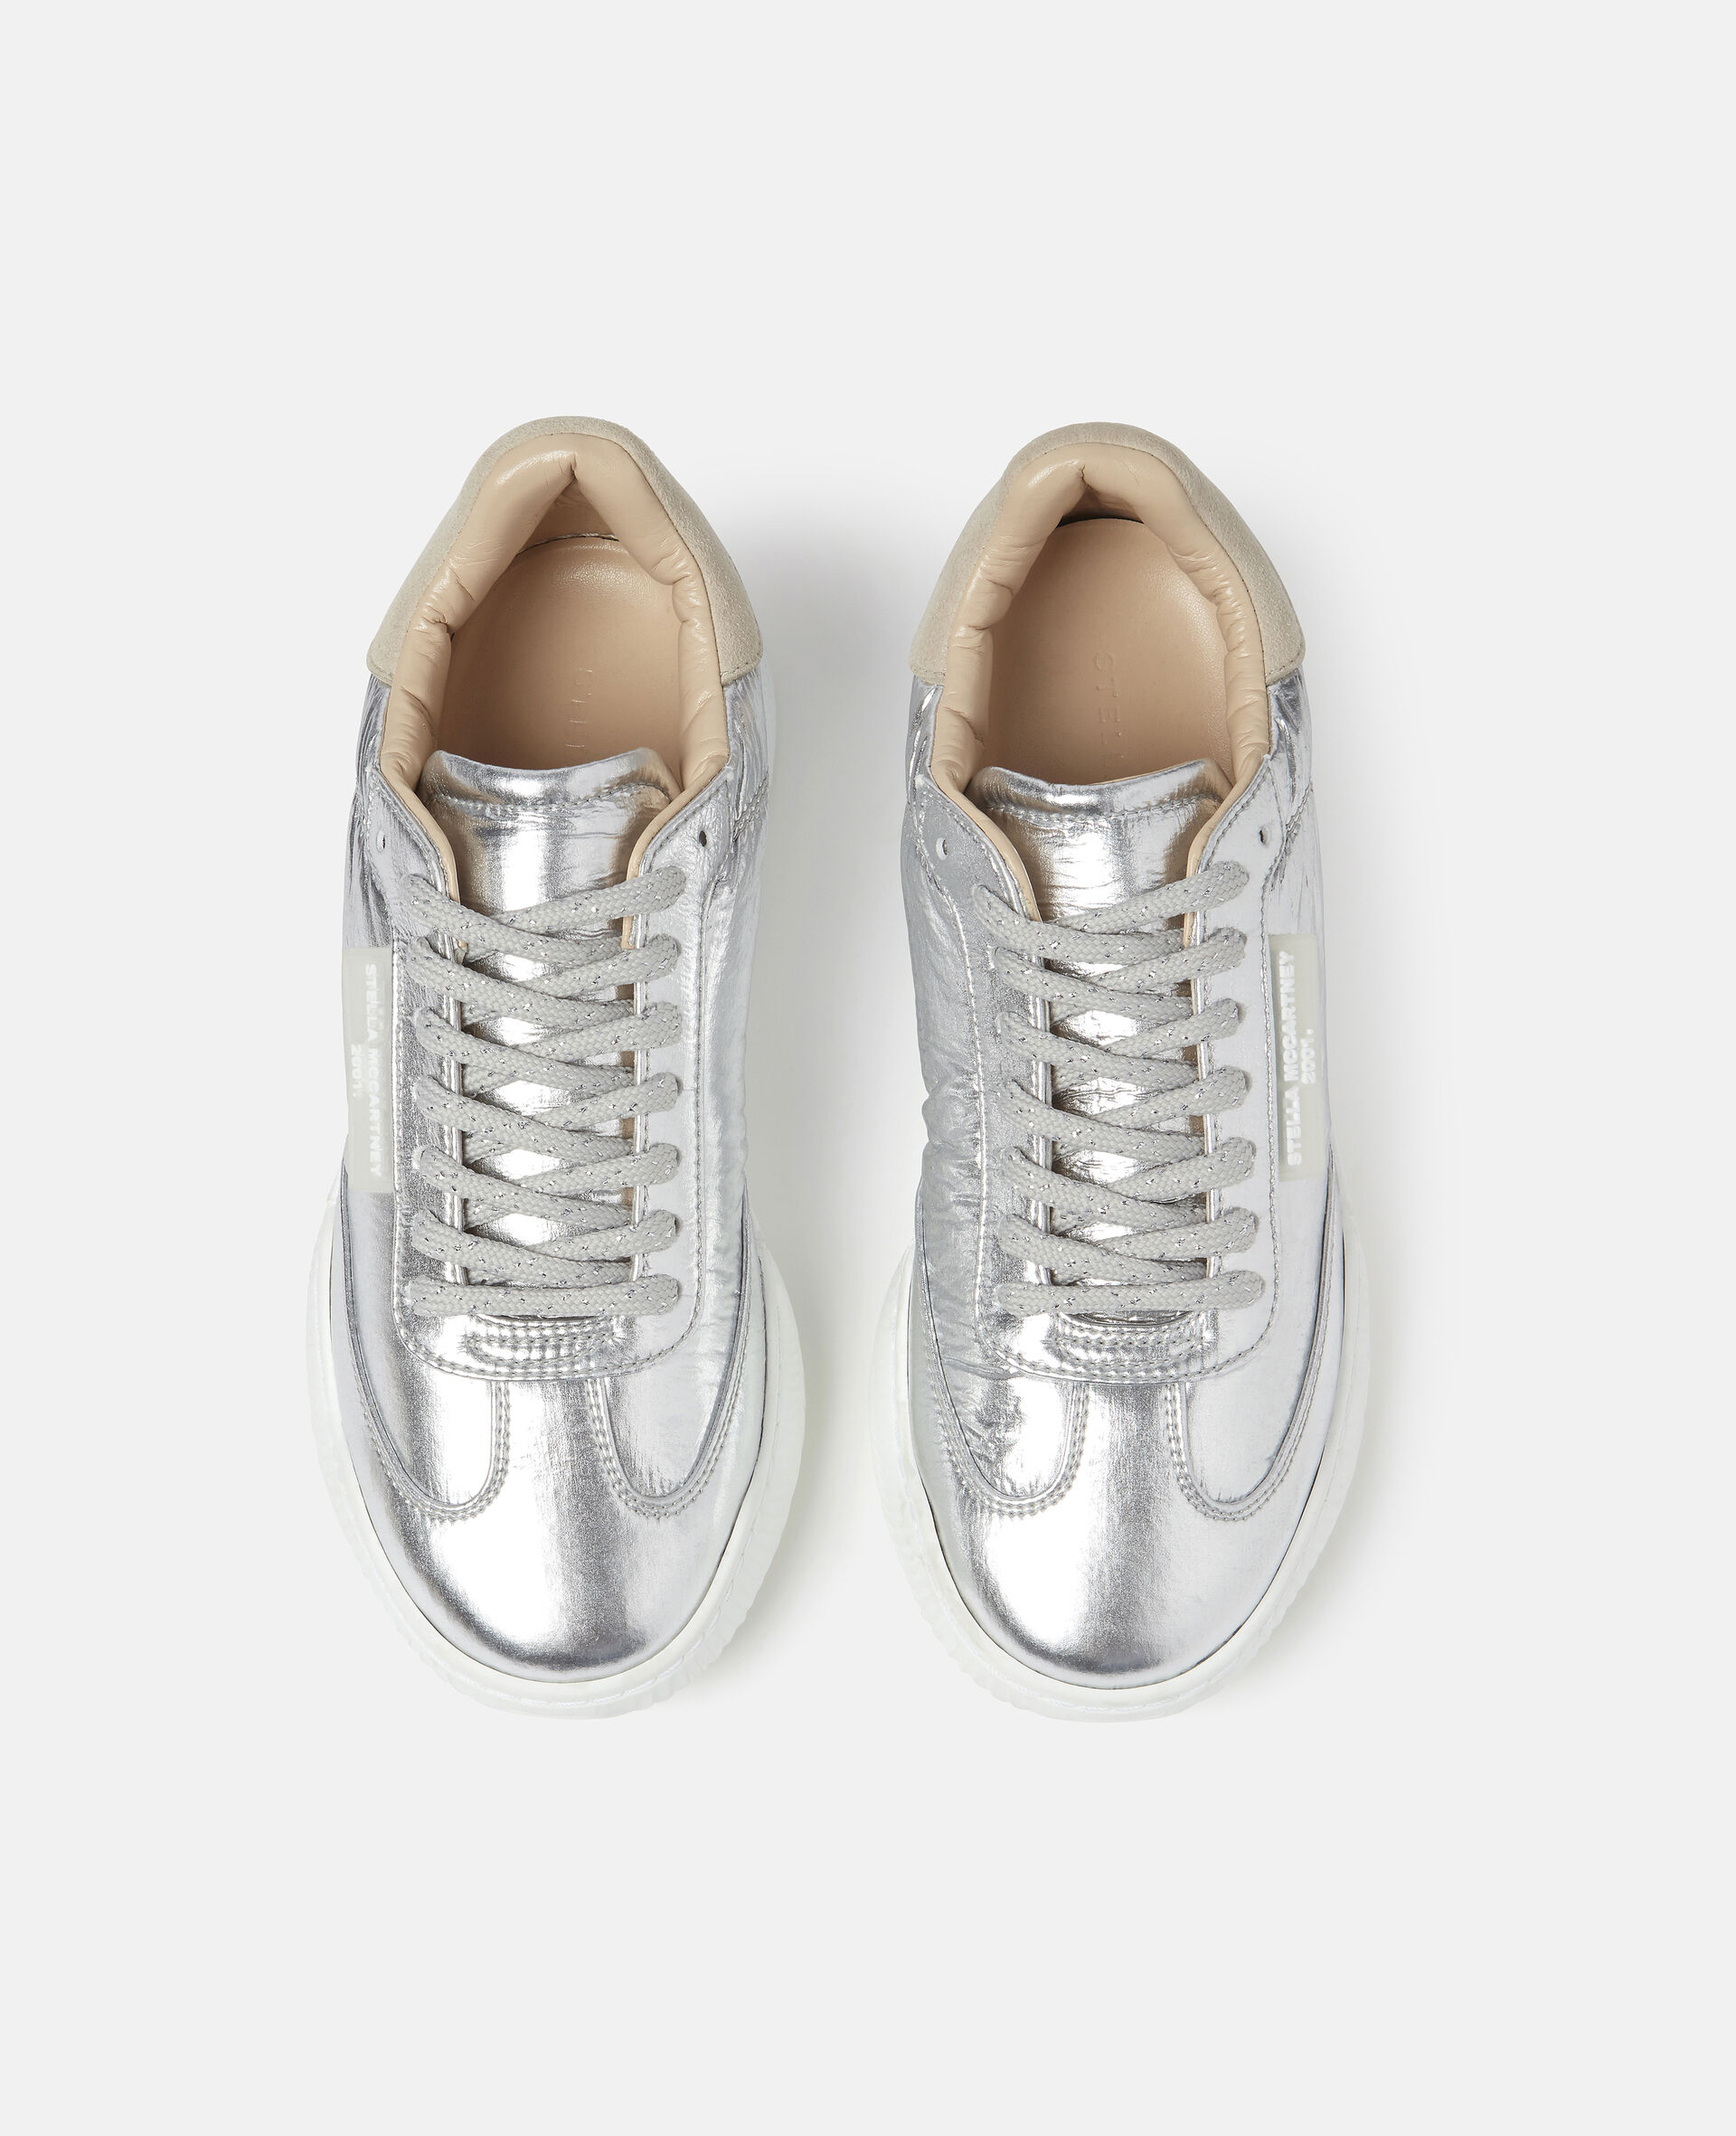 Loop Lace-up Sneakers-Grey-large image number 3